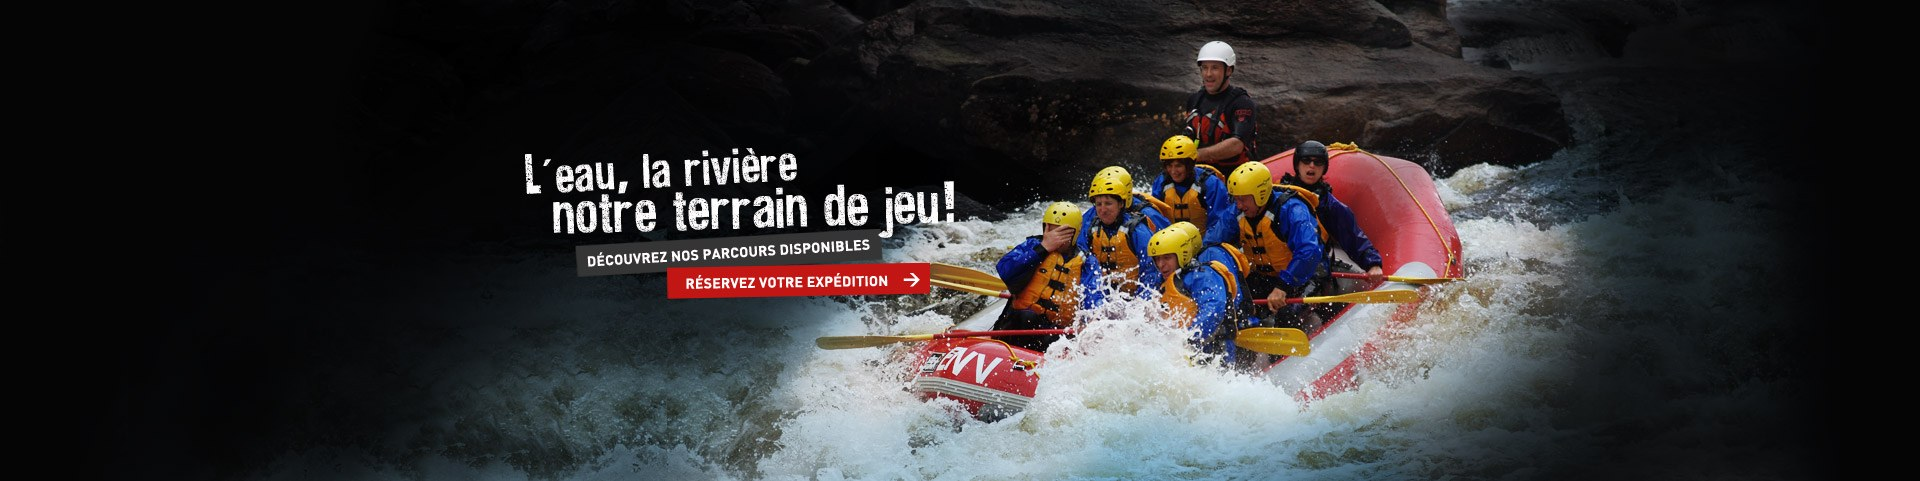 riviere-jacques-cartier-hebergement-rafting